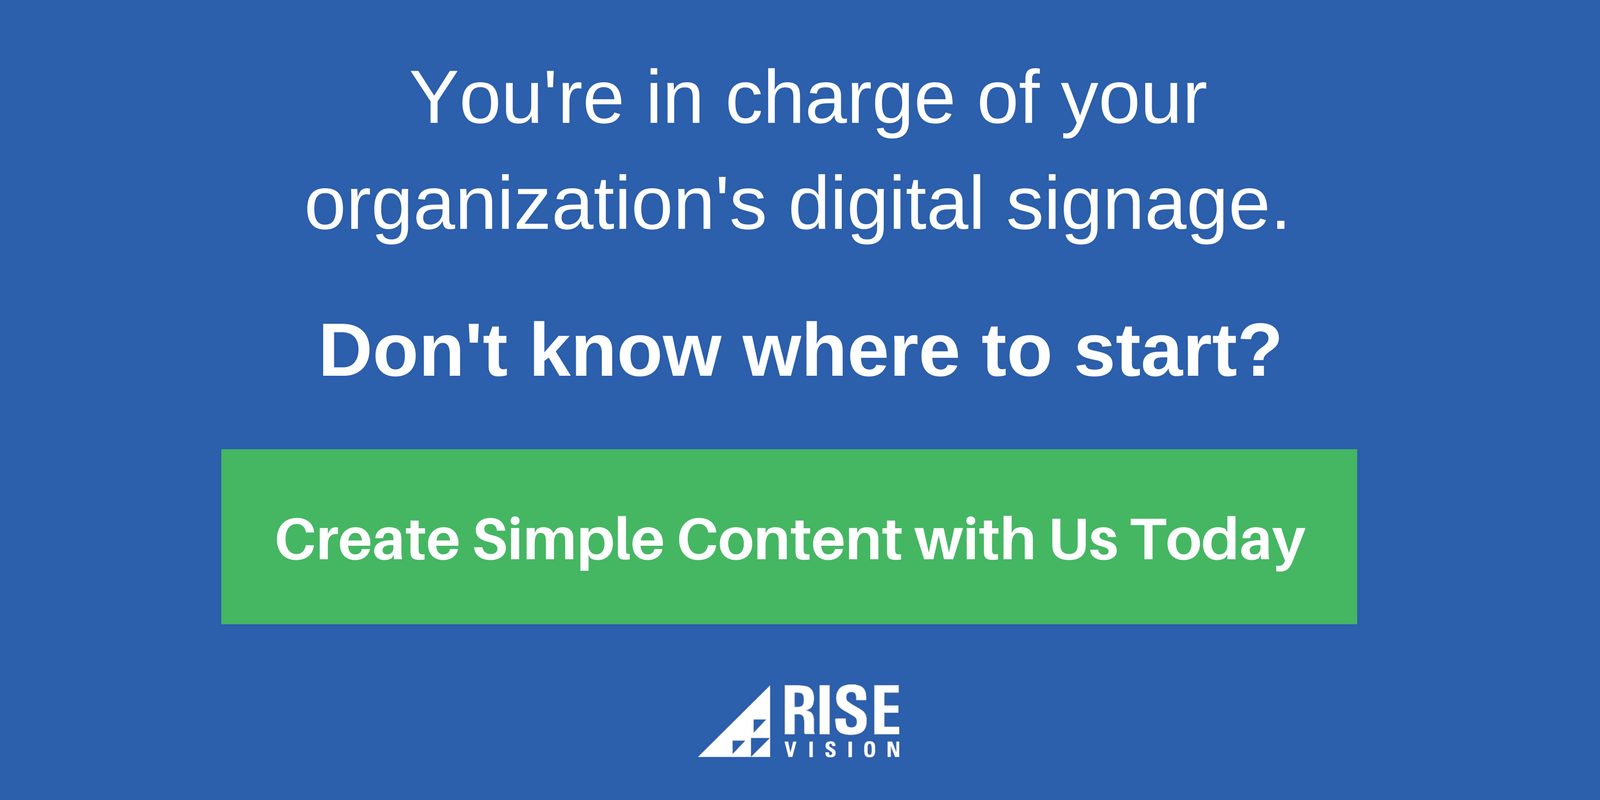 Rise Vision Digital Signage Content Good Example.png